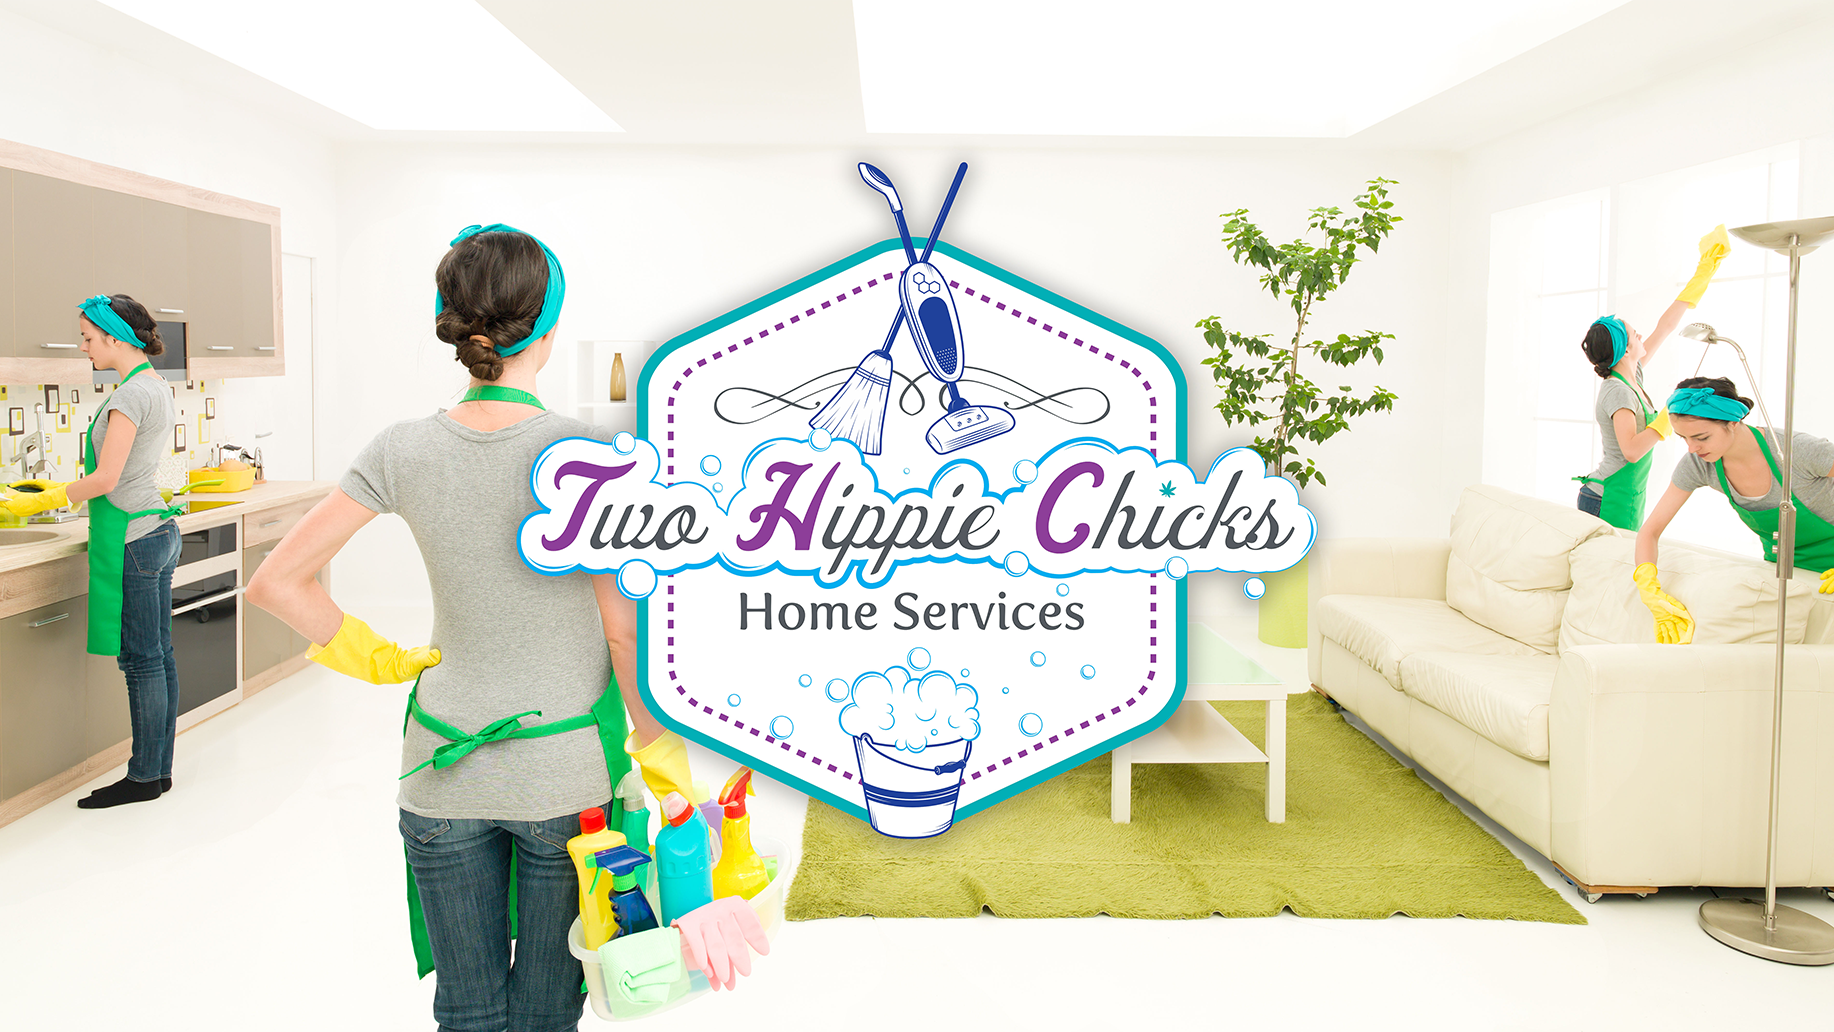 Two Hippie Chicks Home Services